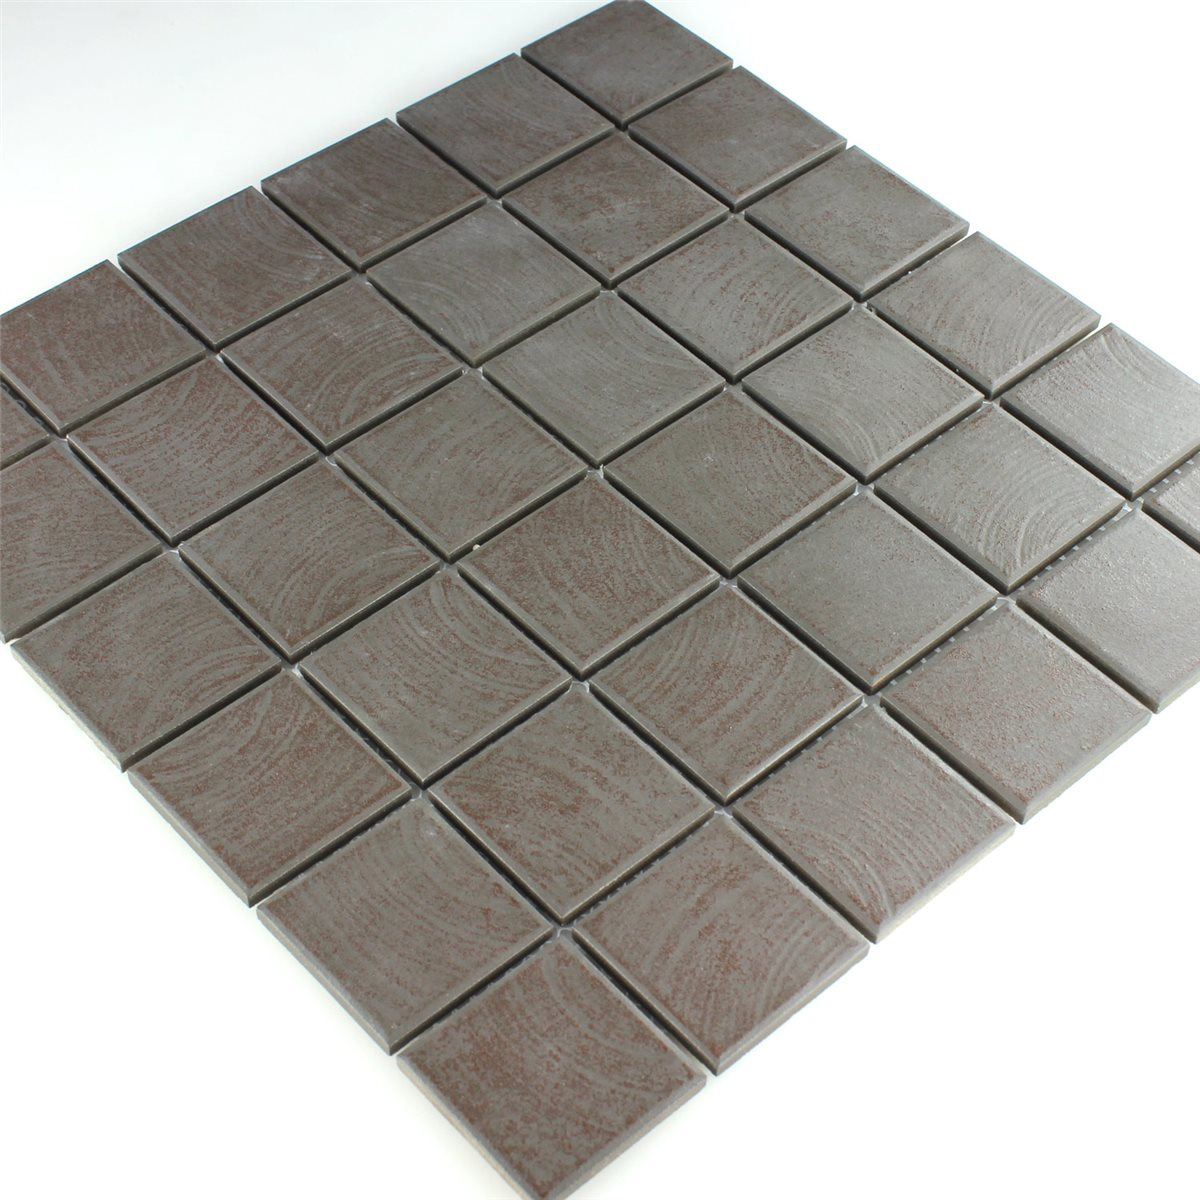 Ceramic mosaic tiles non slip brown structured mosafil mosaic tiles ceramic non slip brown structured dailygadgetfo Images